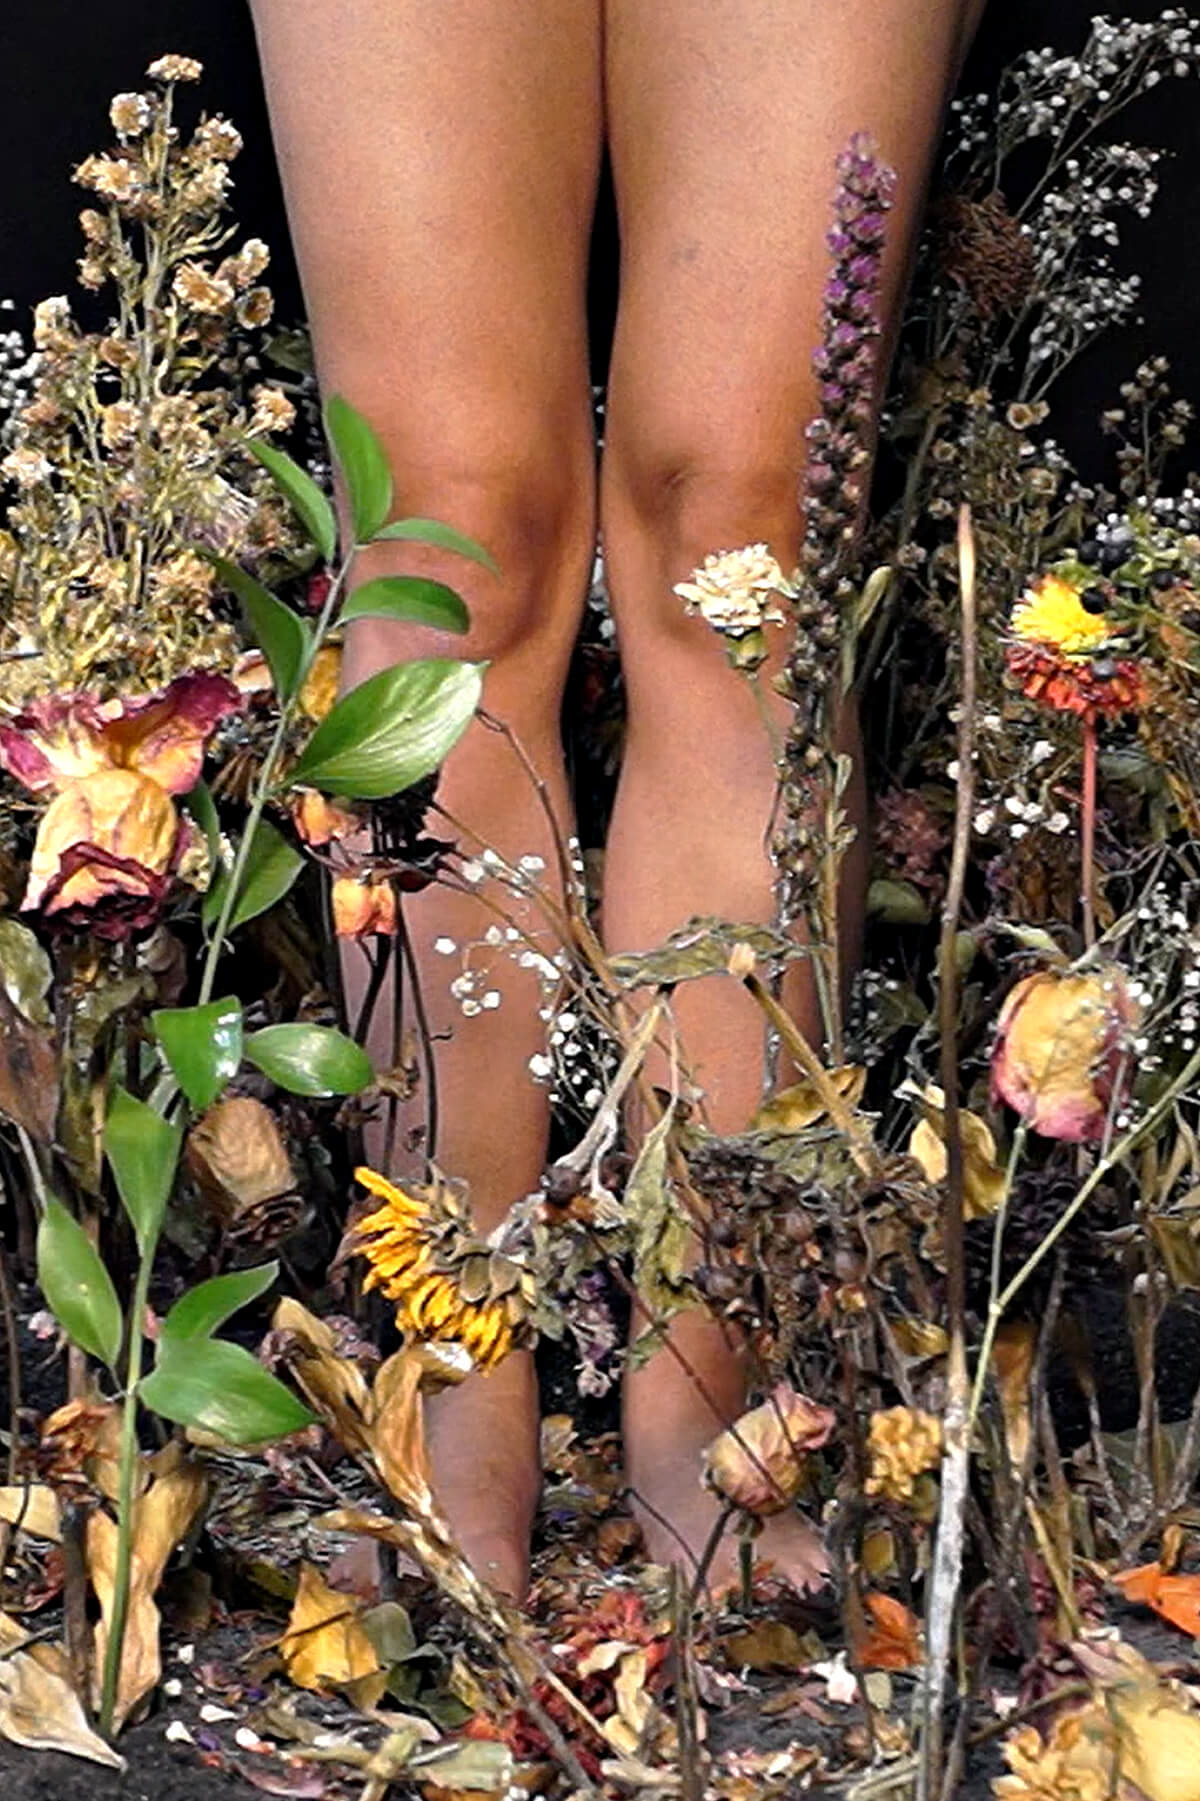 A photograph of a young barefoot woman's legs with a garden of dead flowers in the foreground.